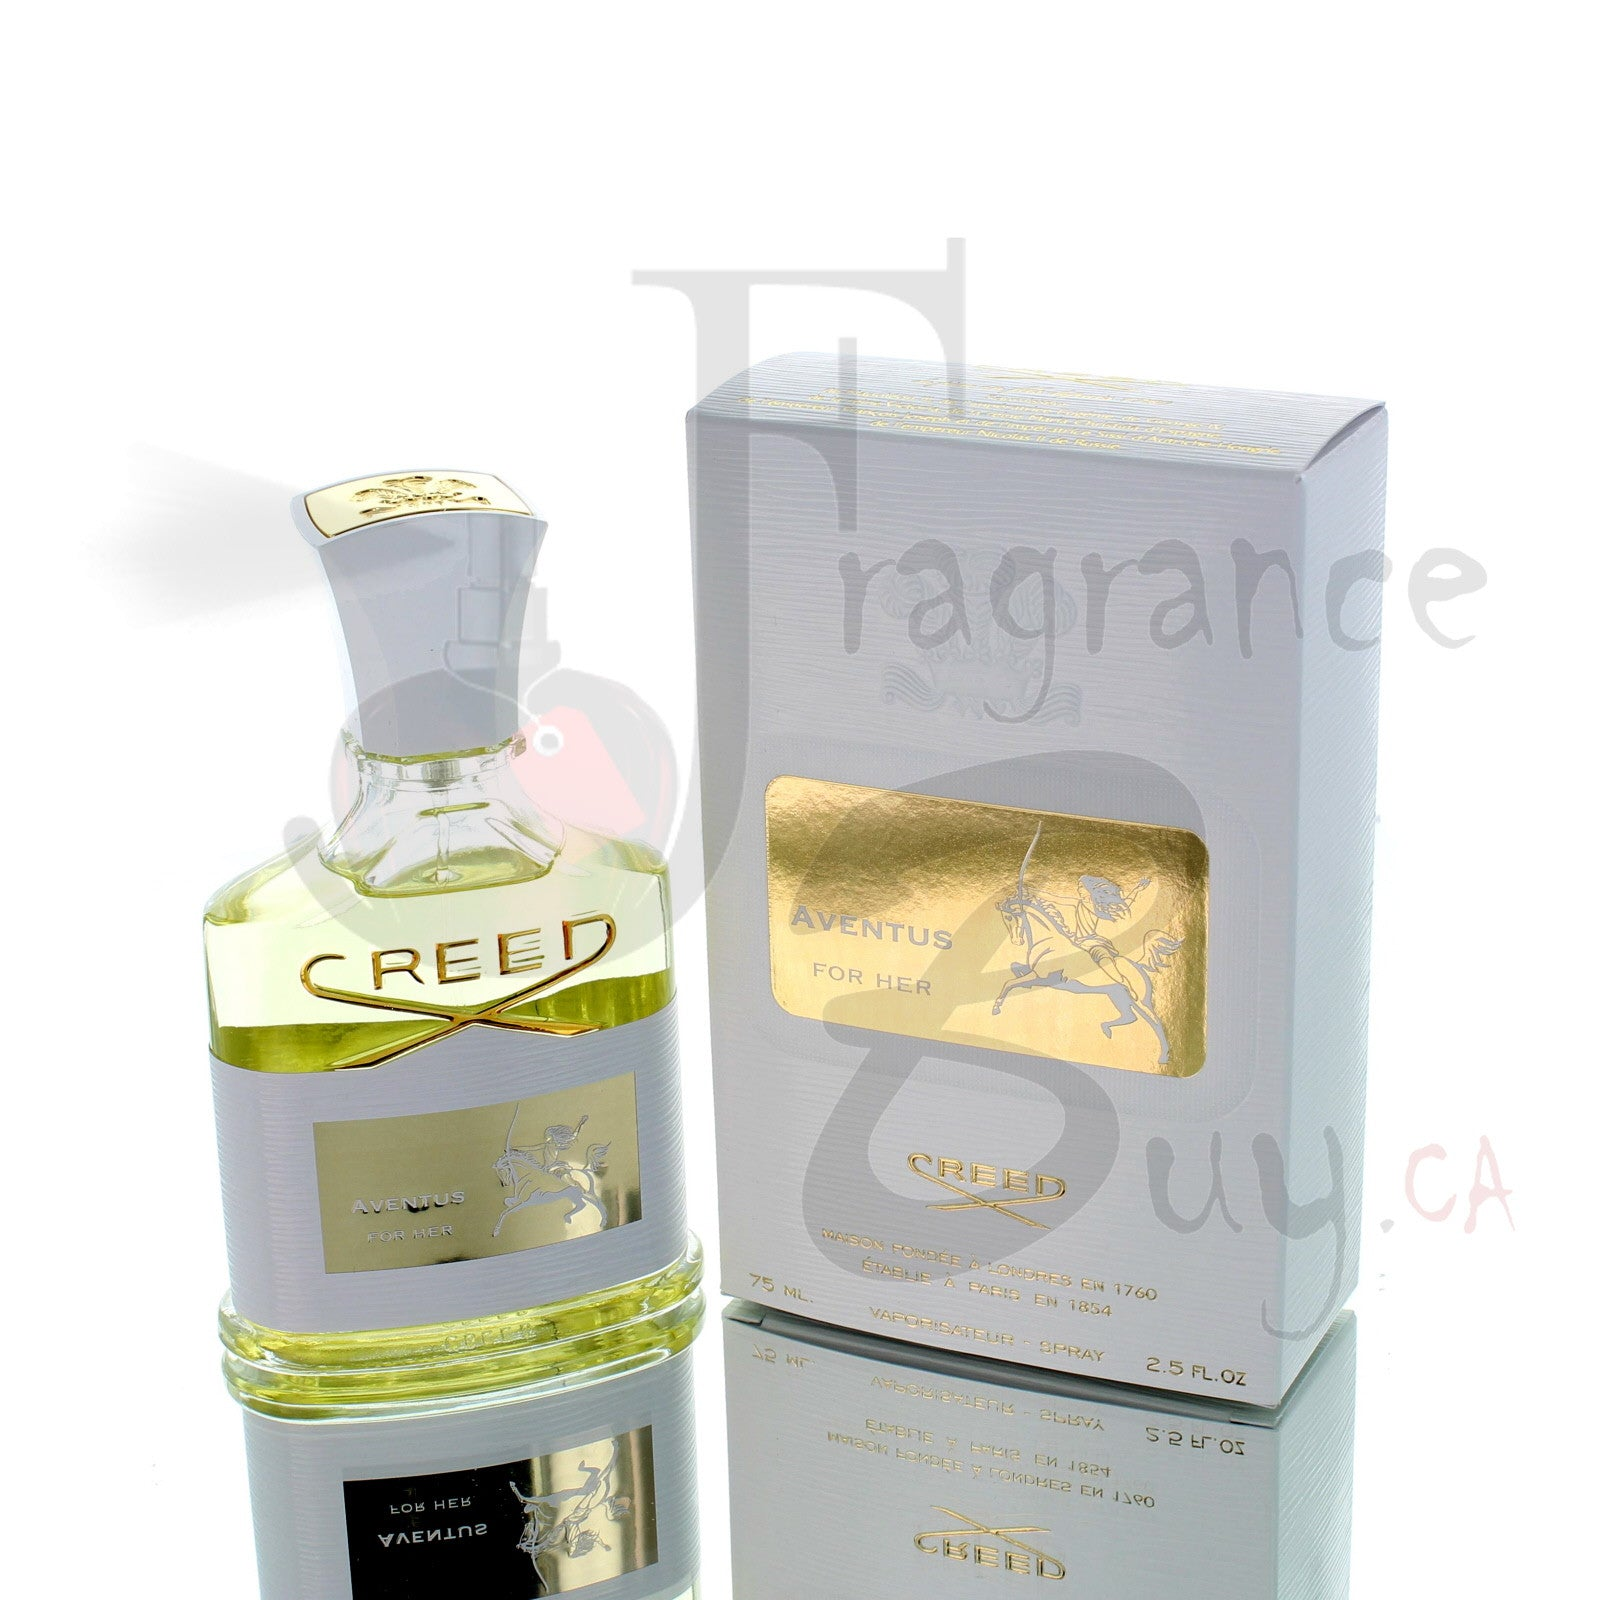 Creed Aventus For Woman 75ml Boxed